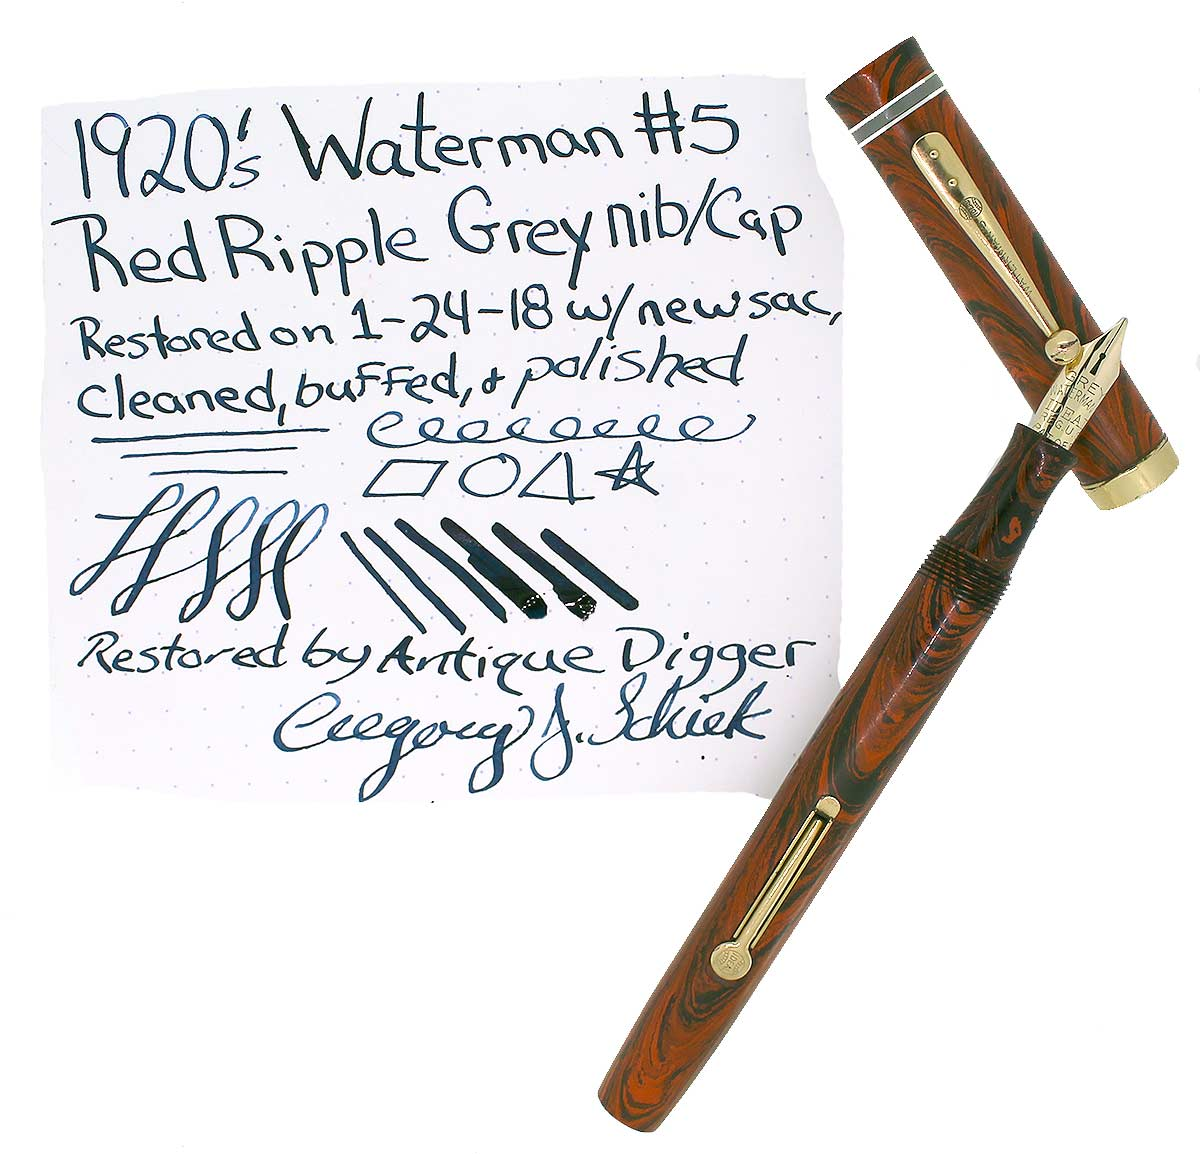 1920S WATERMAN #5 RED RIPPLE GREY CAP BAND & KEYHOLE NIB FOUNTAIN PEN RESTORED OFFERED BY ANTIQUE DIGGER